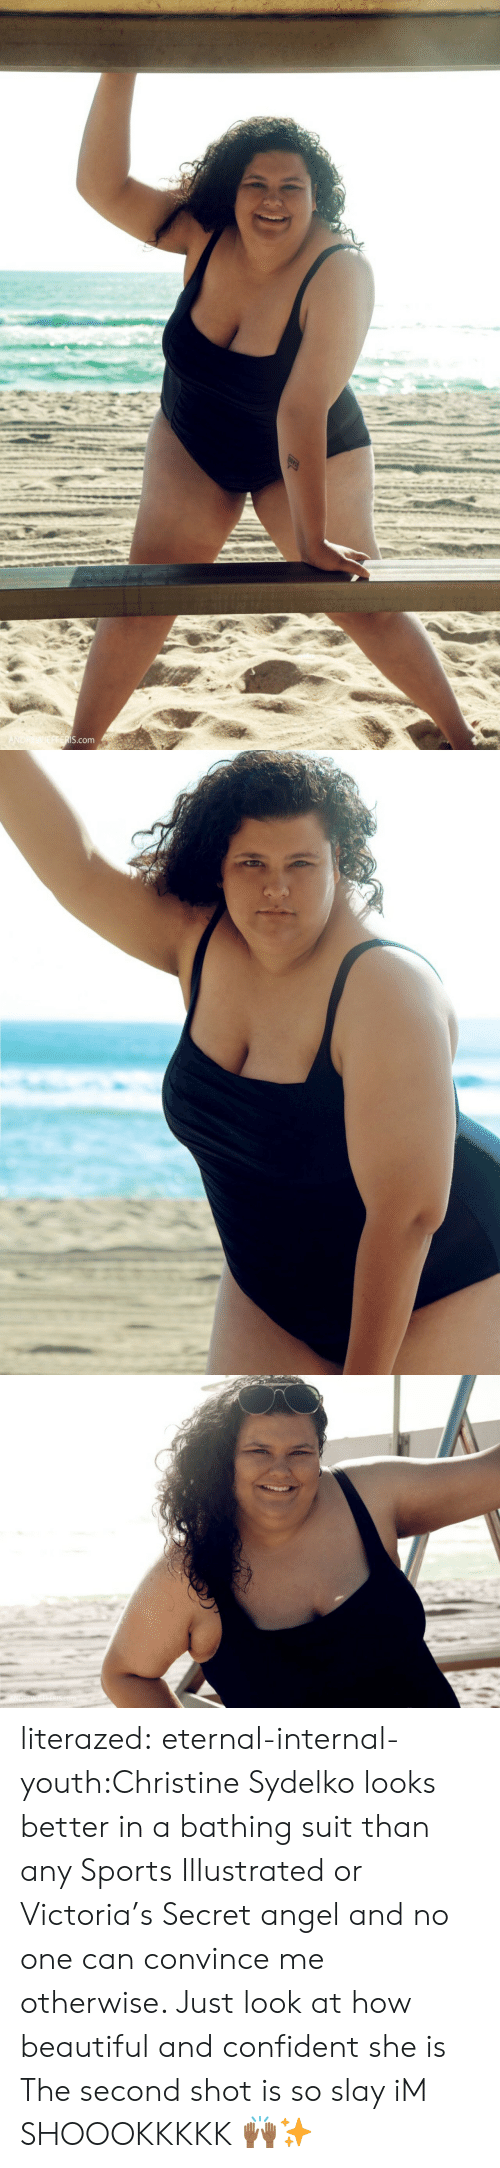 bathing suit: S.com literazed:  eternal-internal-youth:Christine Sydelko looks better in a bathing suit than any Sports Illustrated or Victoria's Secret angel and no one can convince me otherwise. Just look at how beautiful and confident she is  The second shot is so slay iM SHOOOKKKKK 🙌🏾✨